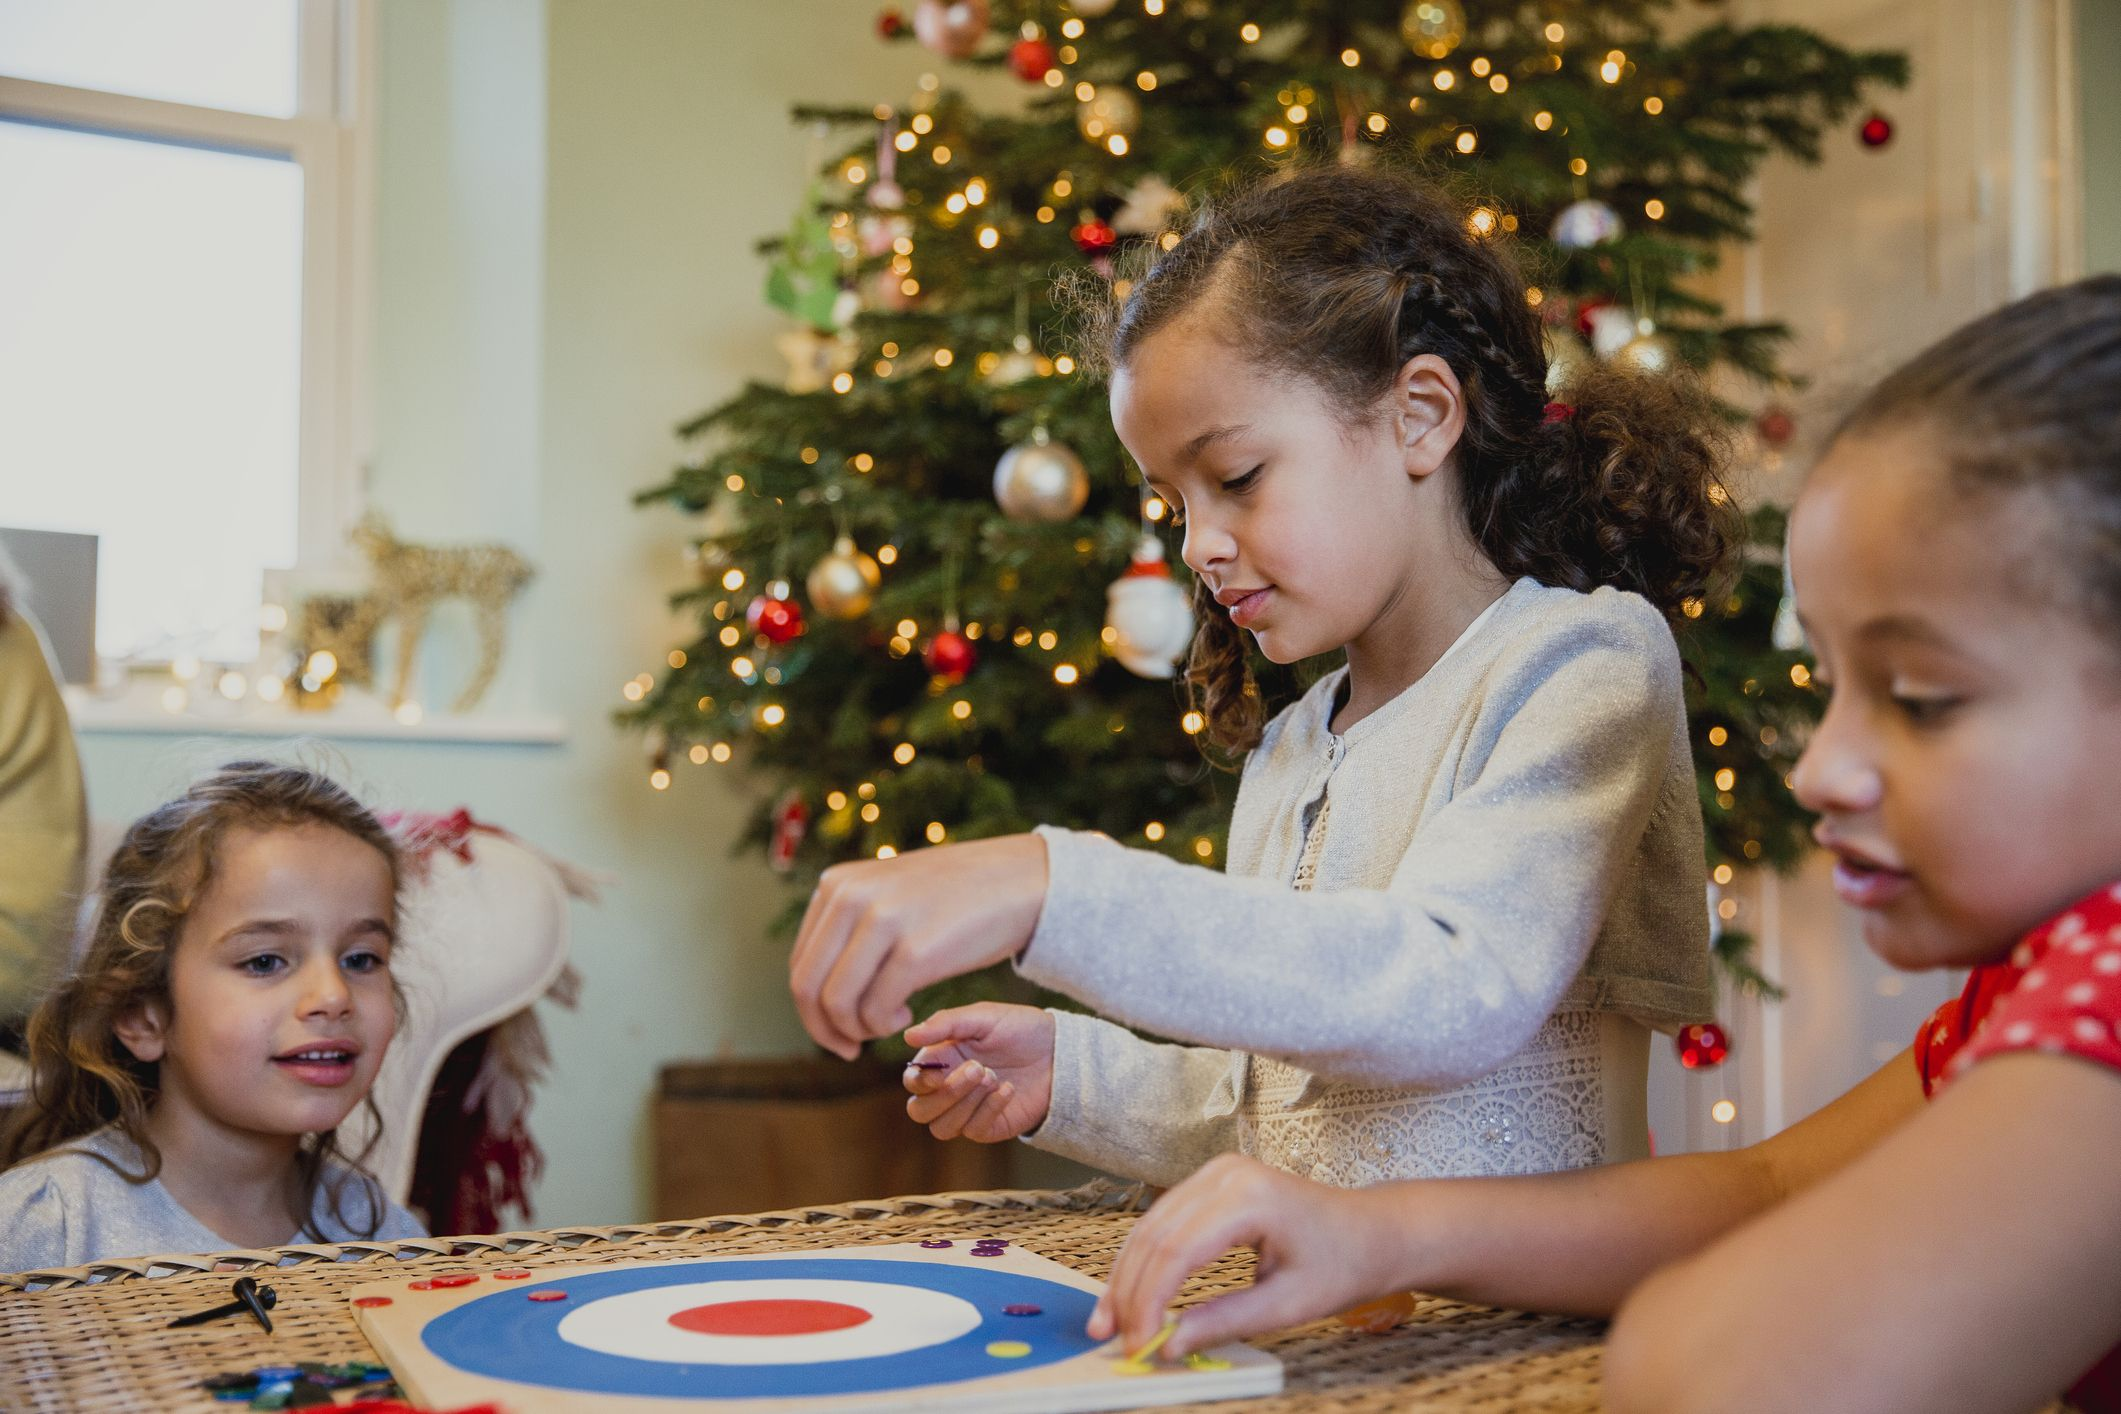 Family Christmas.30 Fun Christmas Games To Play With The Family Homemade